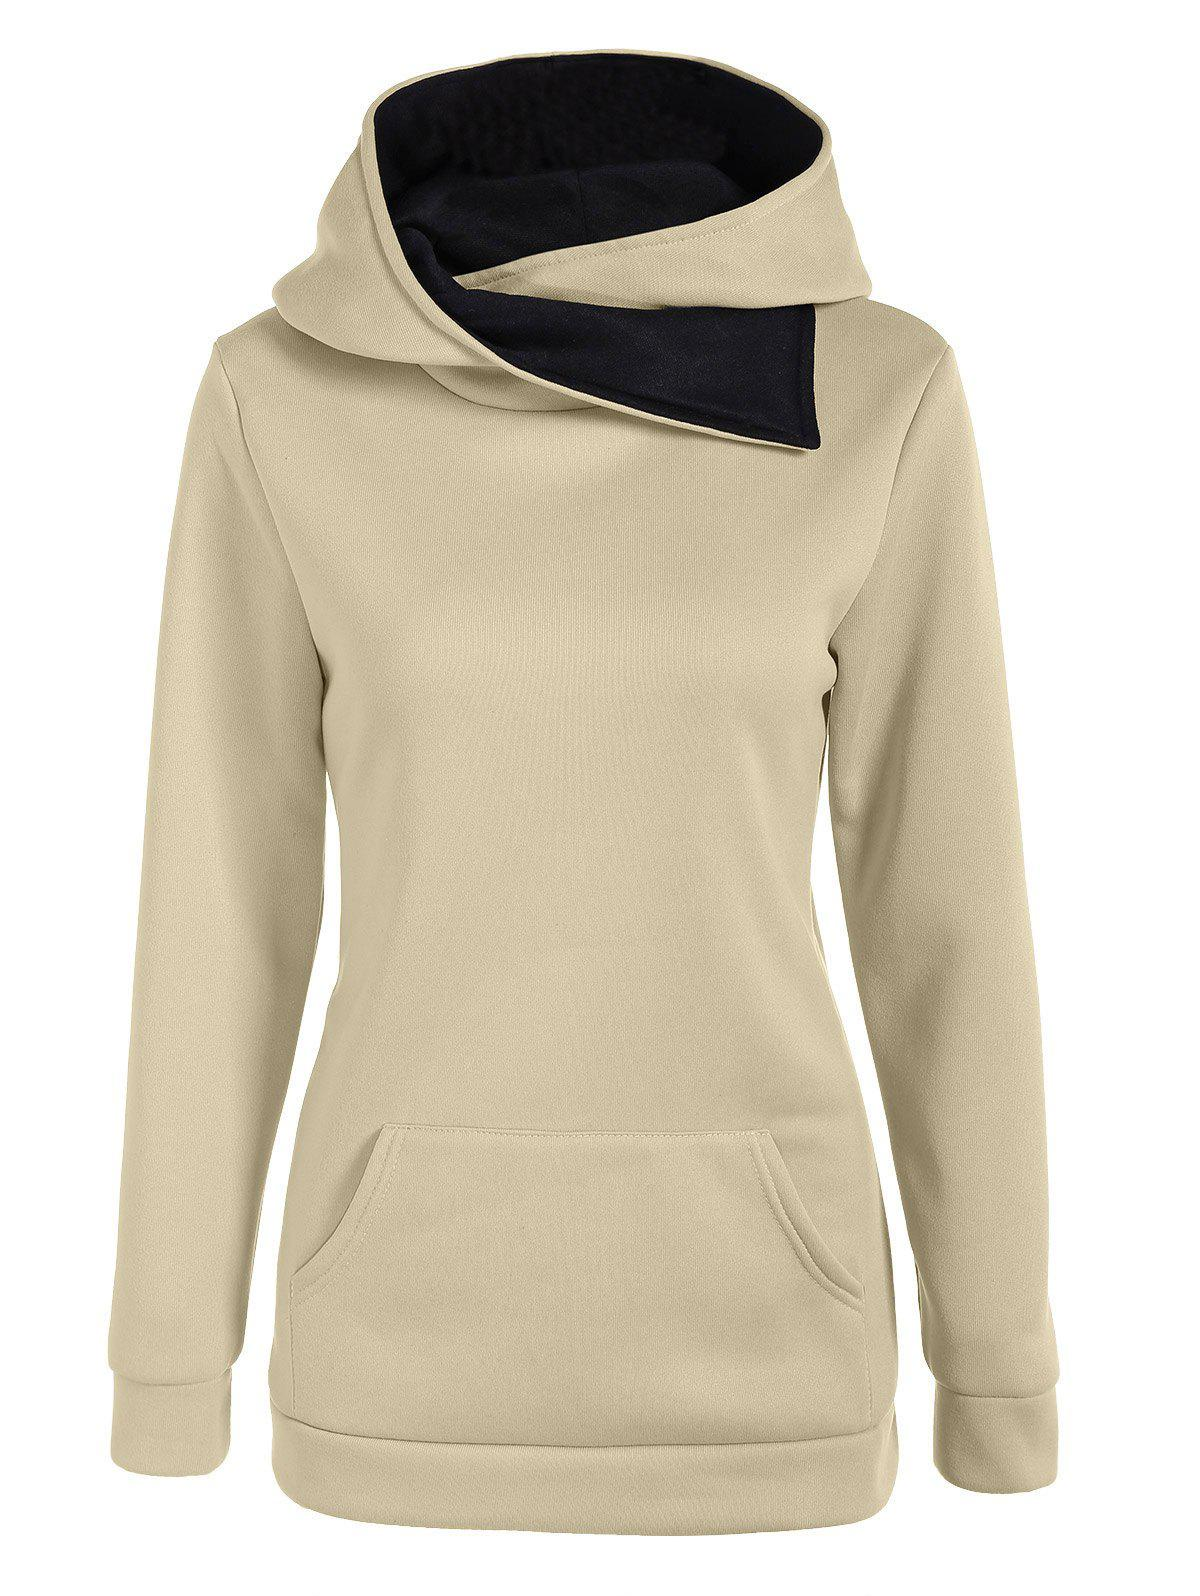 Affordable Casual Kangaroo Pocket Pullover Hoodie